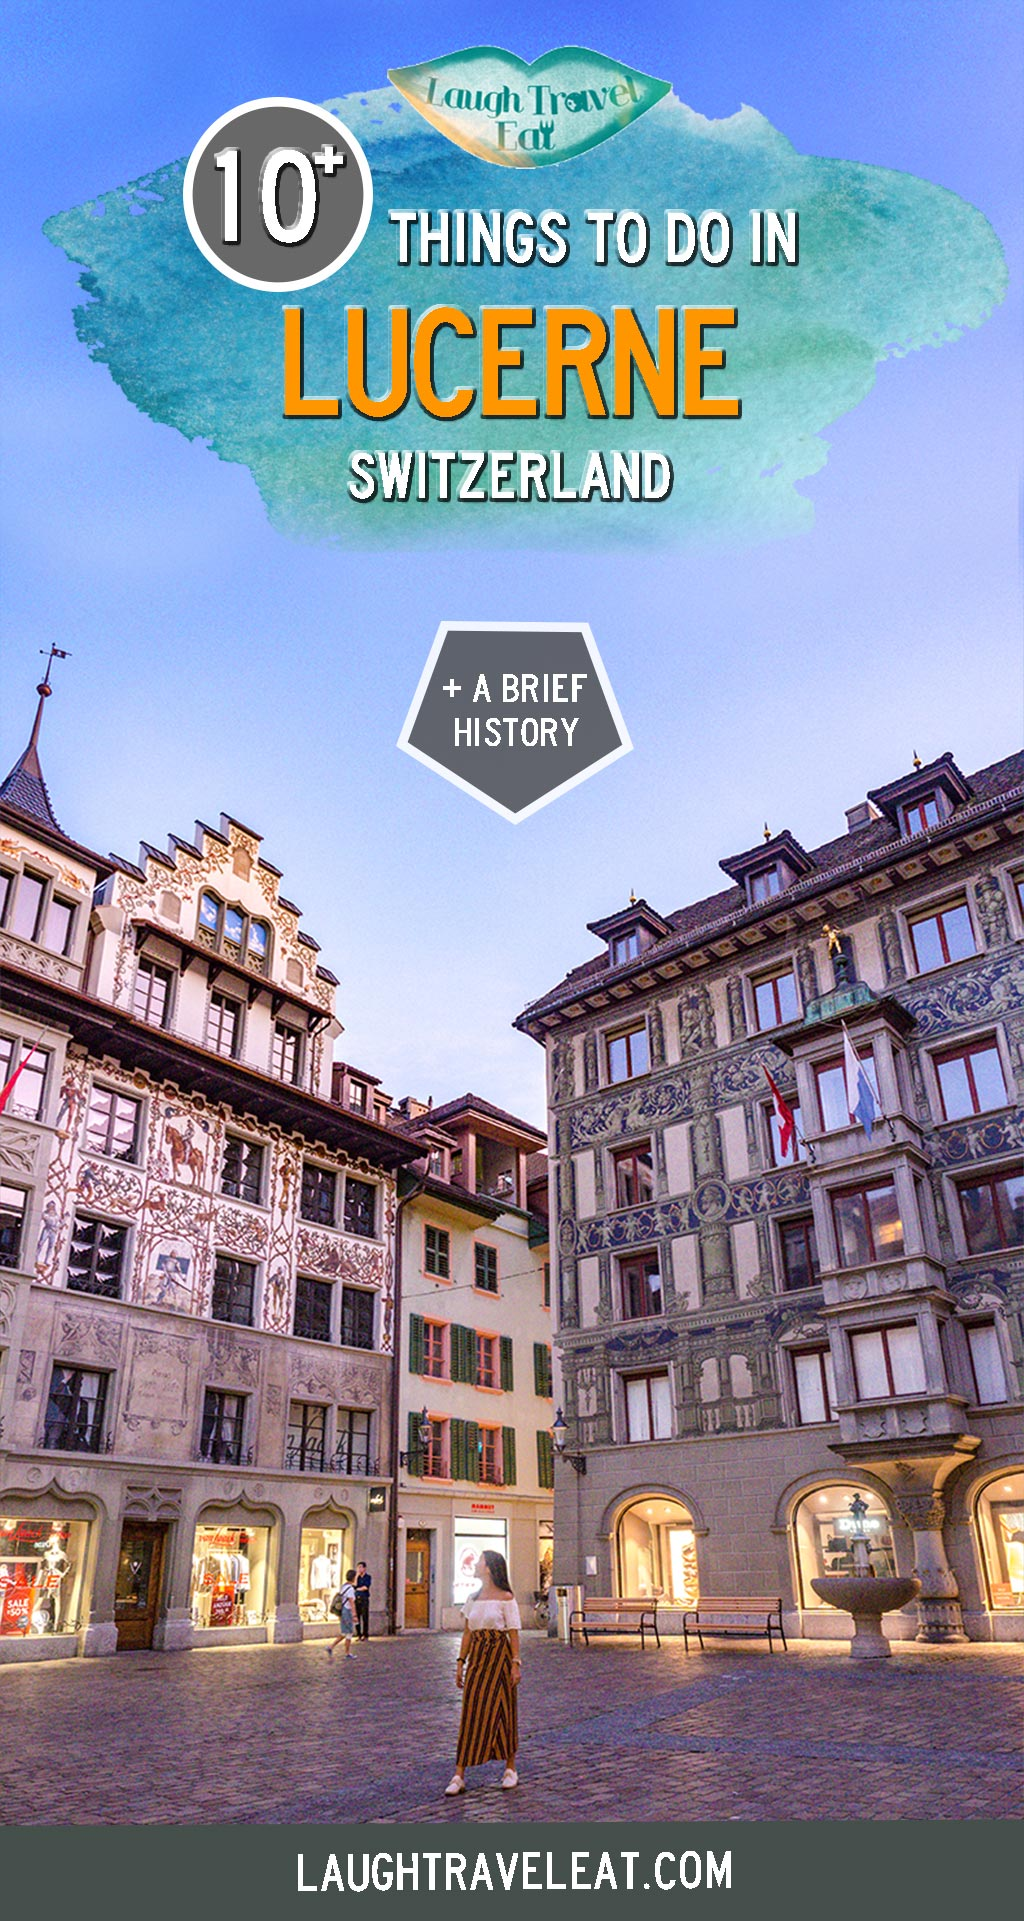 Lucerne is a historic city in the center of Switzerland on the River Reuss. There is a certain old time charm that lingers in its cobblestone streets and intricate painted medieval buildings that summon a sense of wanderlust like no other. Here is a guide to Lucerne and what to do around the city: #Lucerne #Switzerland